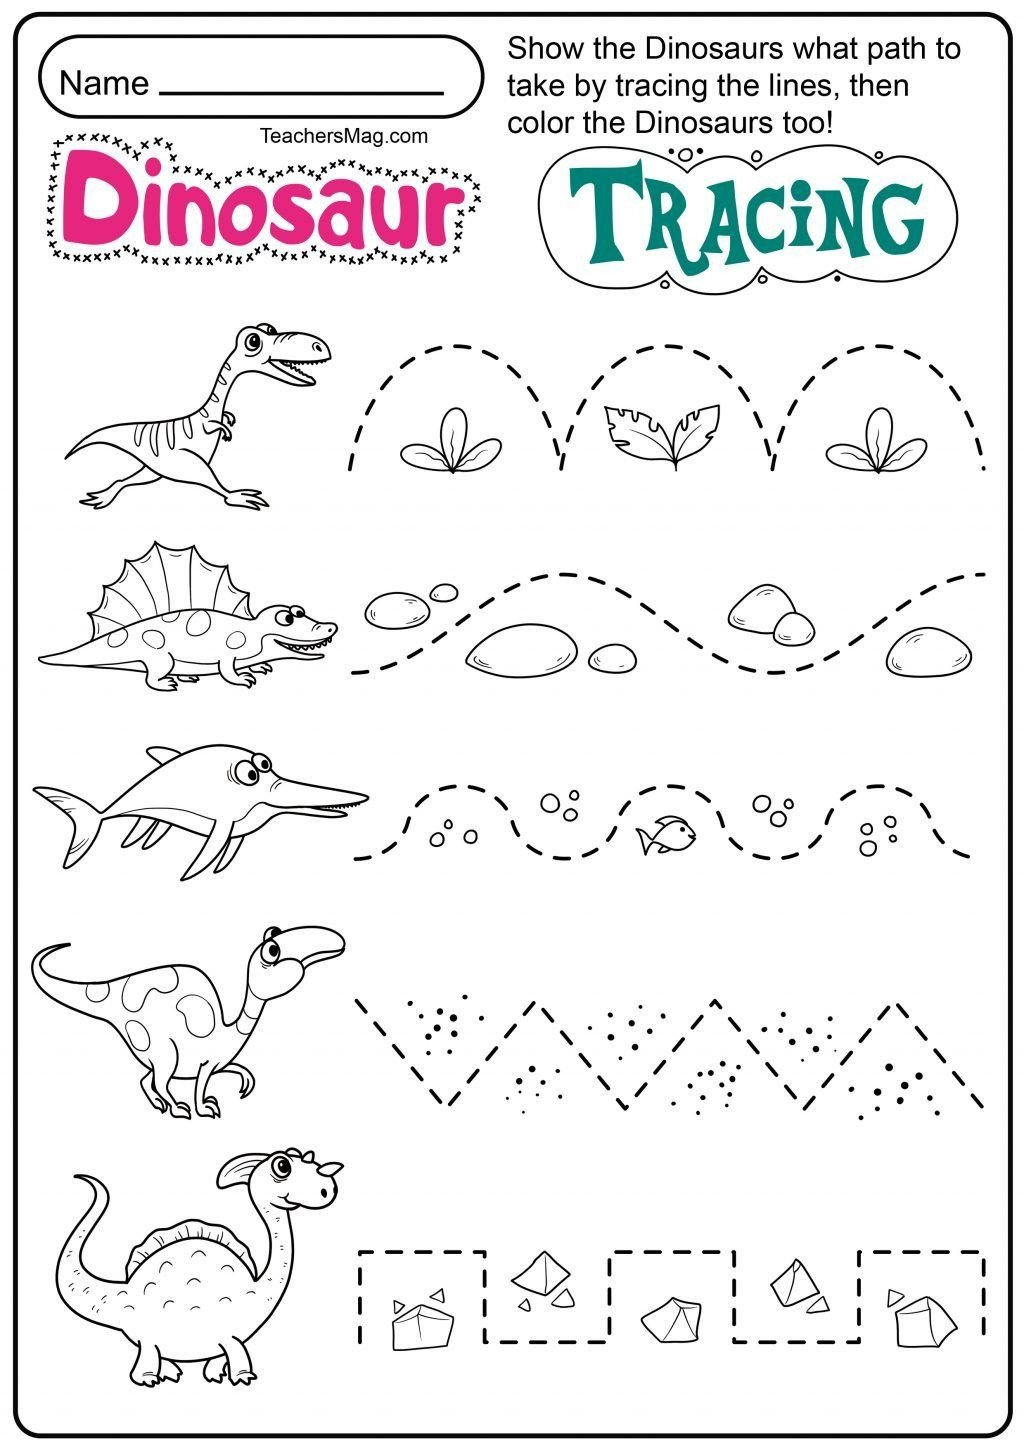 Dinosaur Worksheets for Preschoolers Pin On Sample Worksheet for Preschool